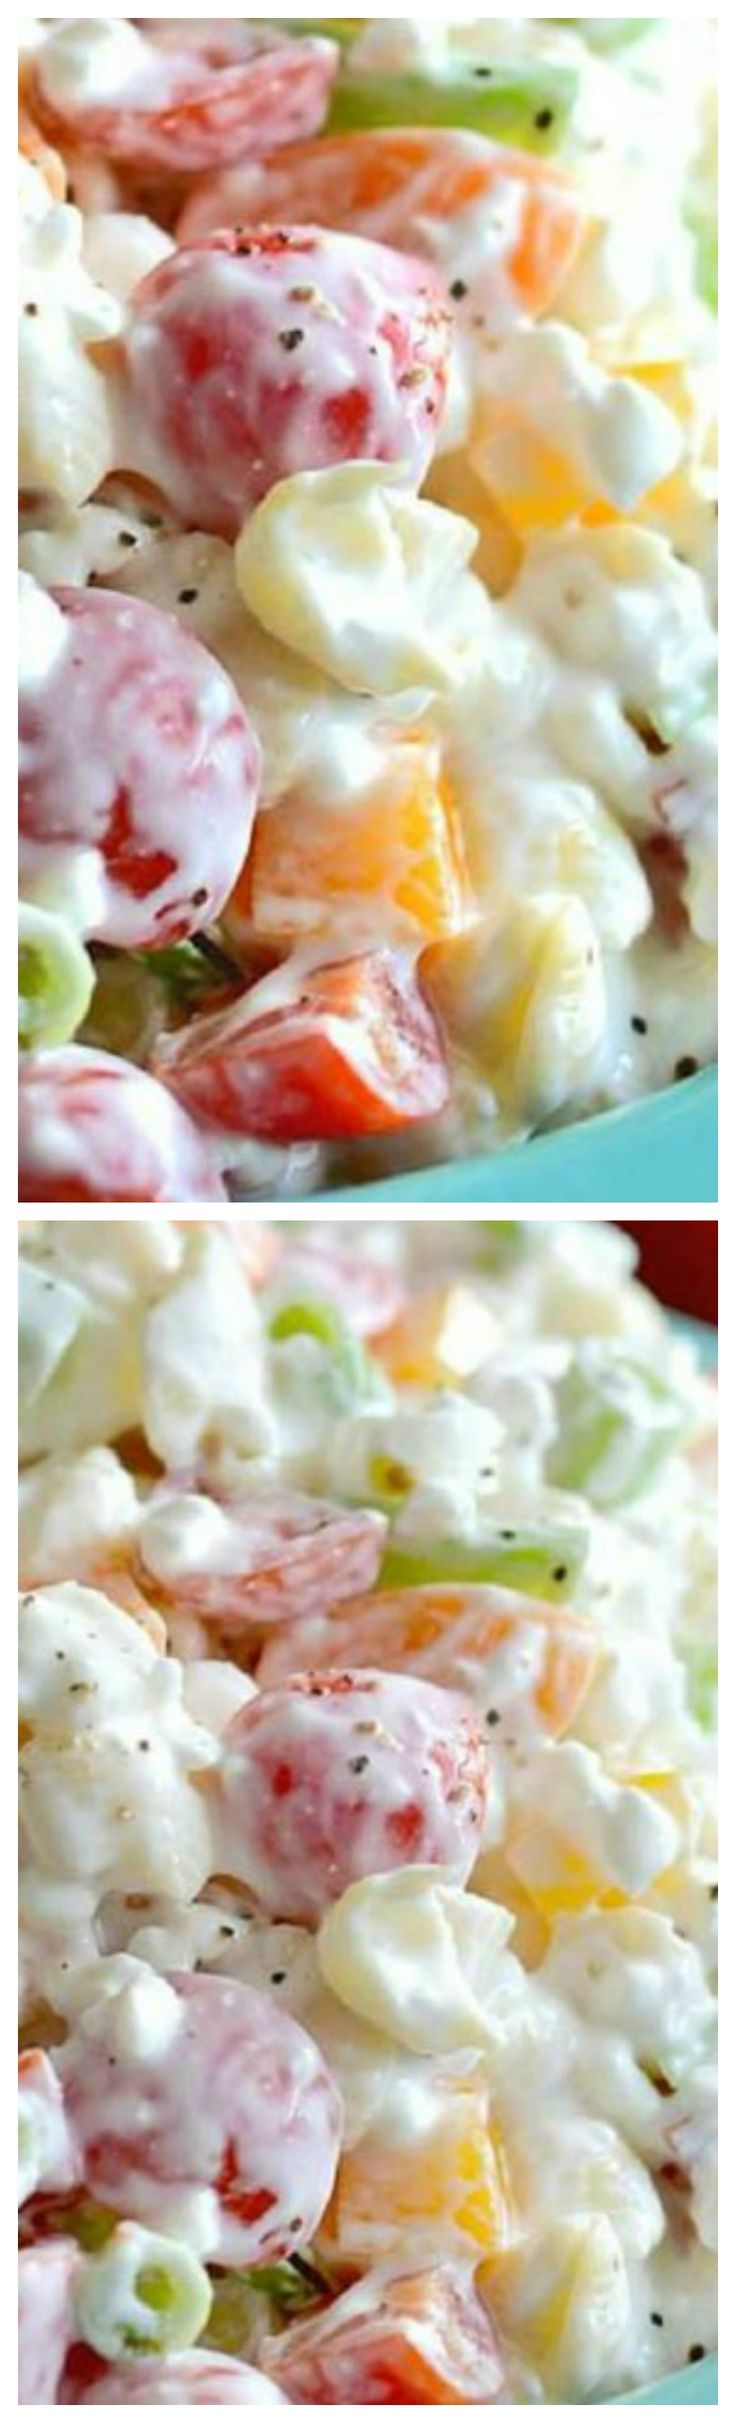 Easy Creamy Pasta Salad ~ A simple and cool make ahead side dish for company or potluck... It's a great way to get your veggies in!